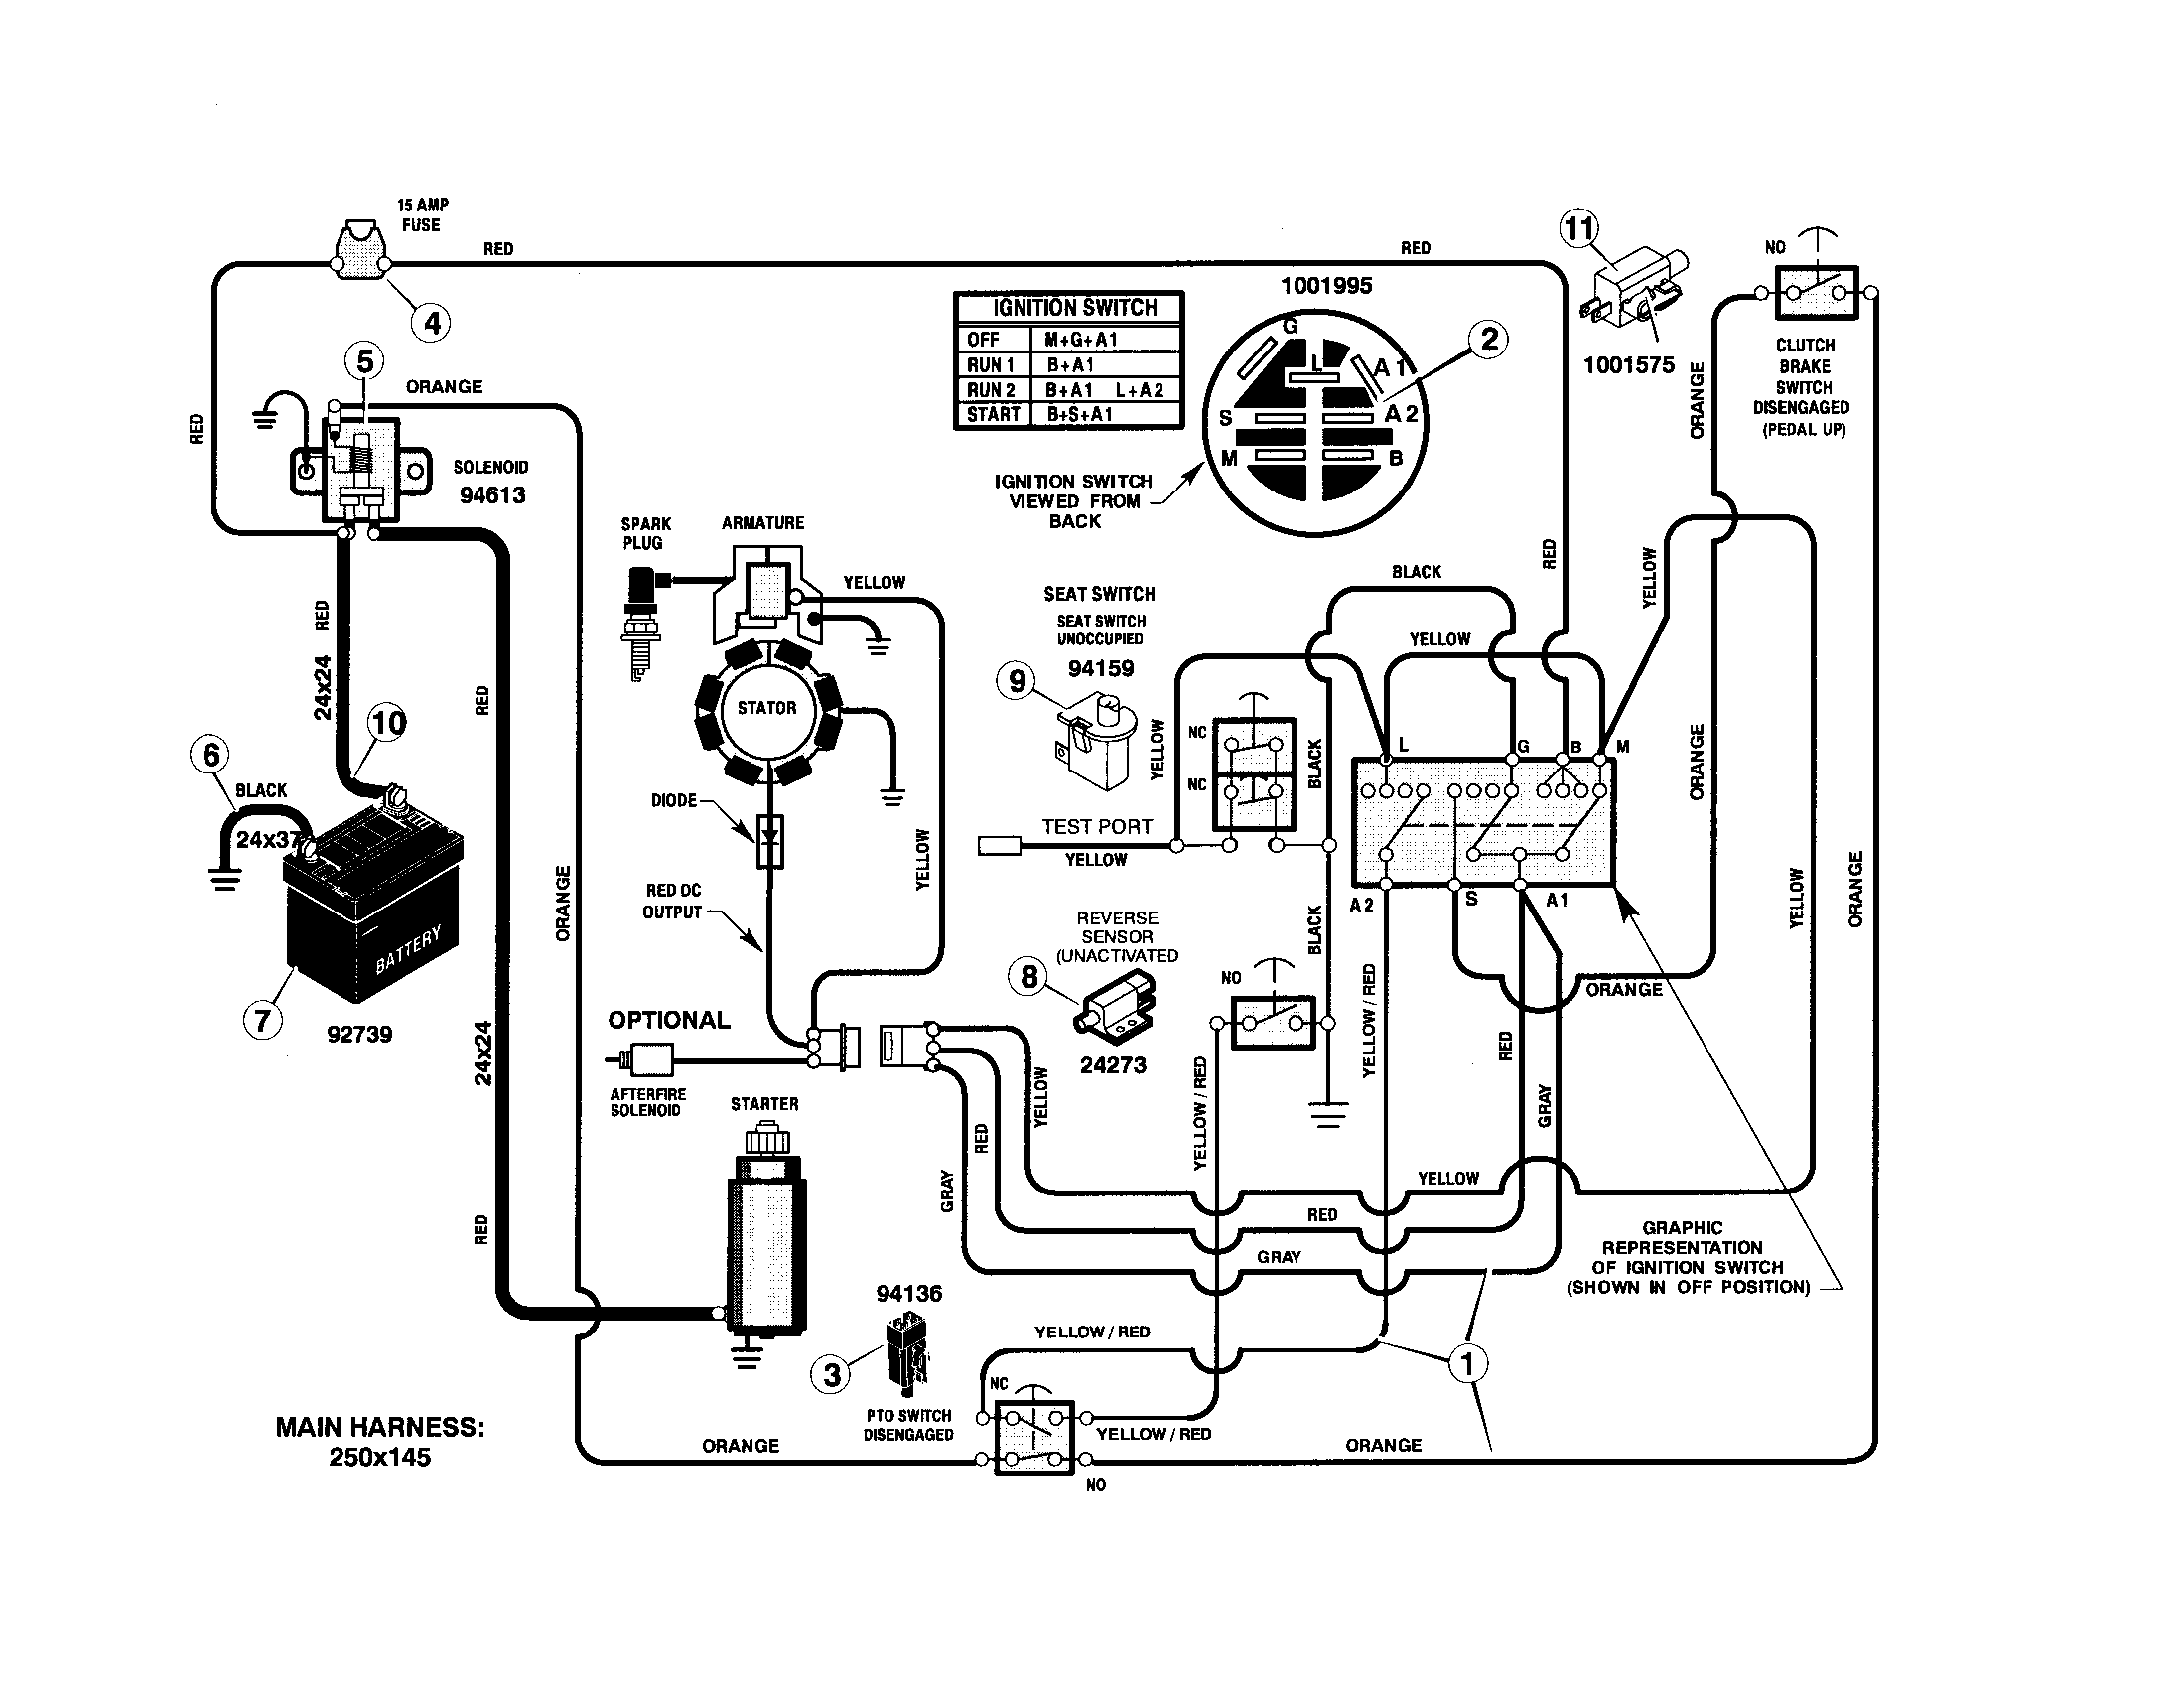 ford 4500 tractor parts diagram sel  ford  auto wiring diagram